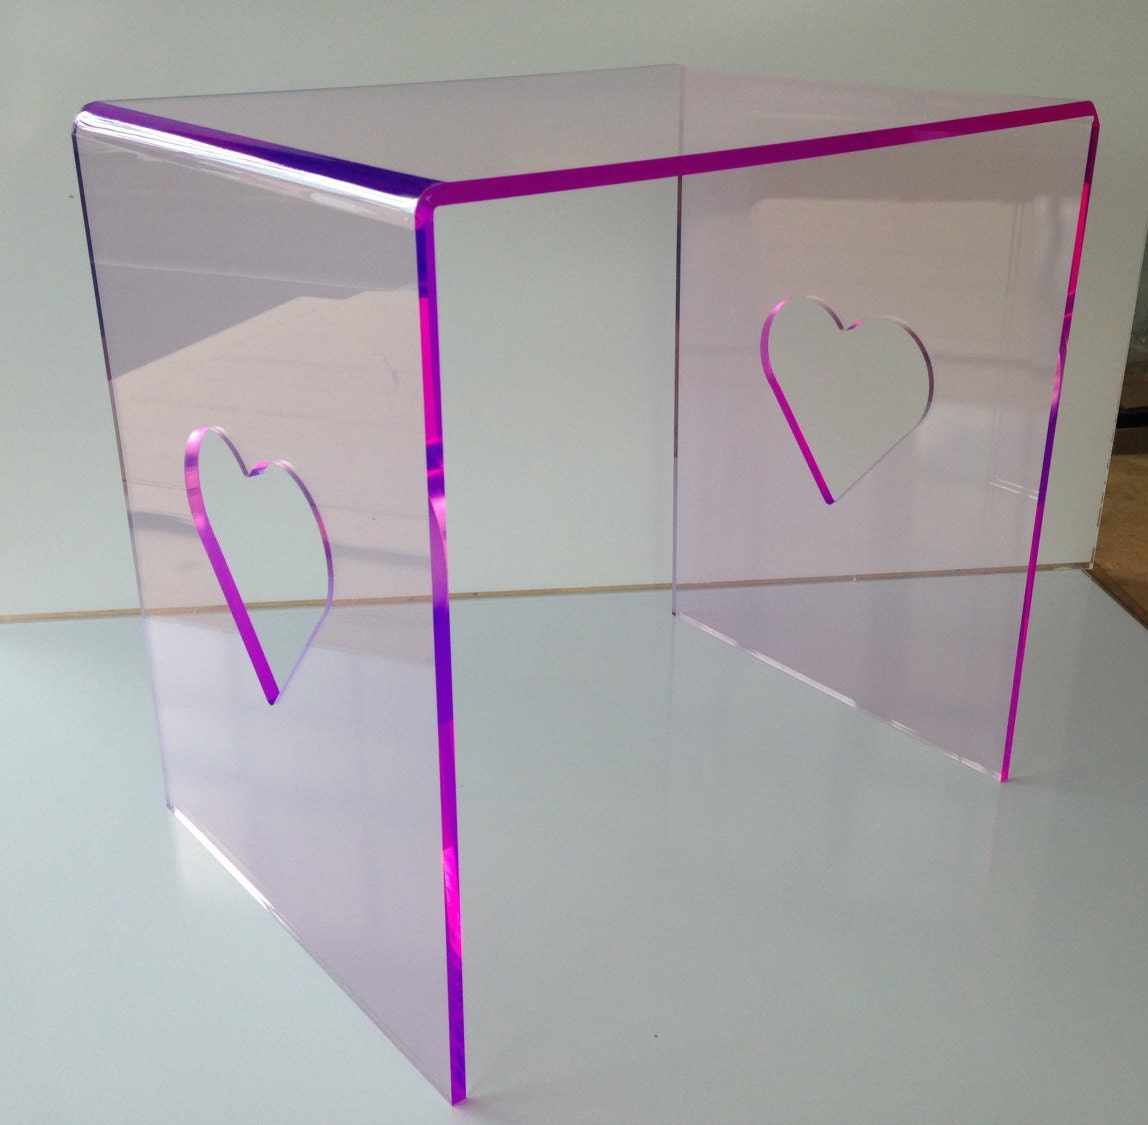 8mm Pink Purple Edge Lit Acrylic Plastic Coffee Table With Heart Cut Out for Girls Boys Bedroom Bedside Table